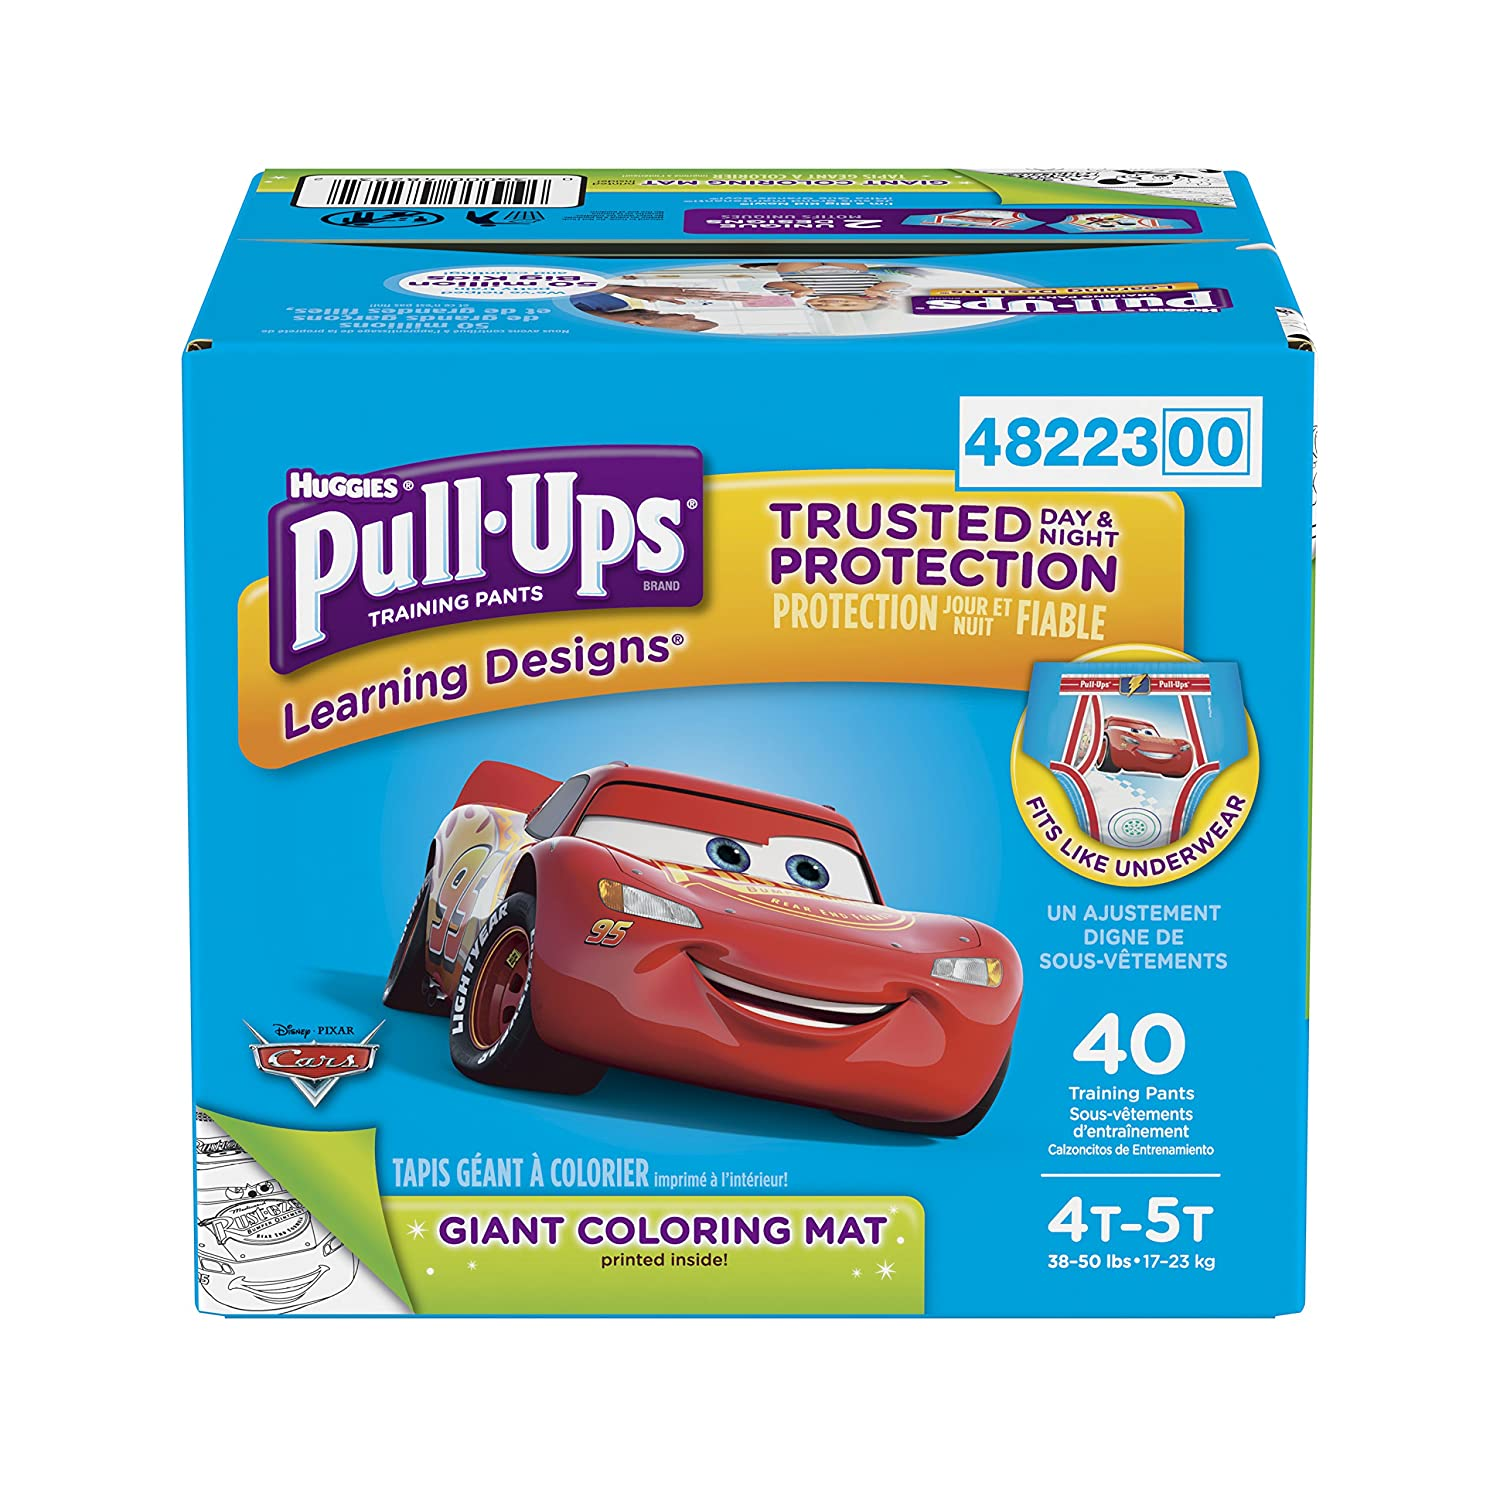 Pull-Ups Learning Designs Potty Training Pants for Girls, 3T-4T (32-40 lb.), 48 Ct. (Packaging May Vary) Kimberly-Clark Corp. 10036000482192